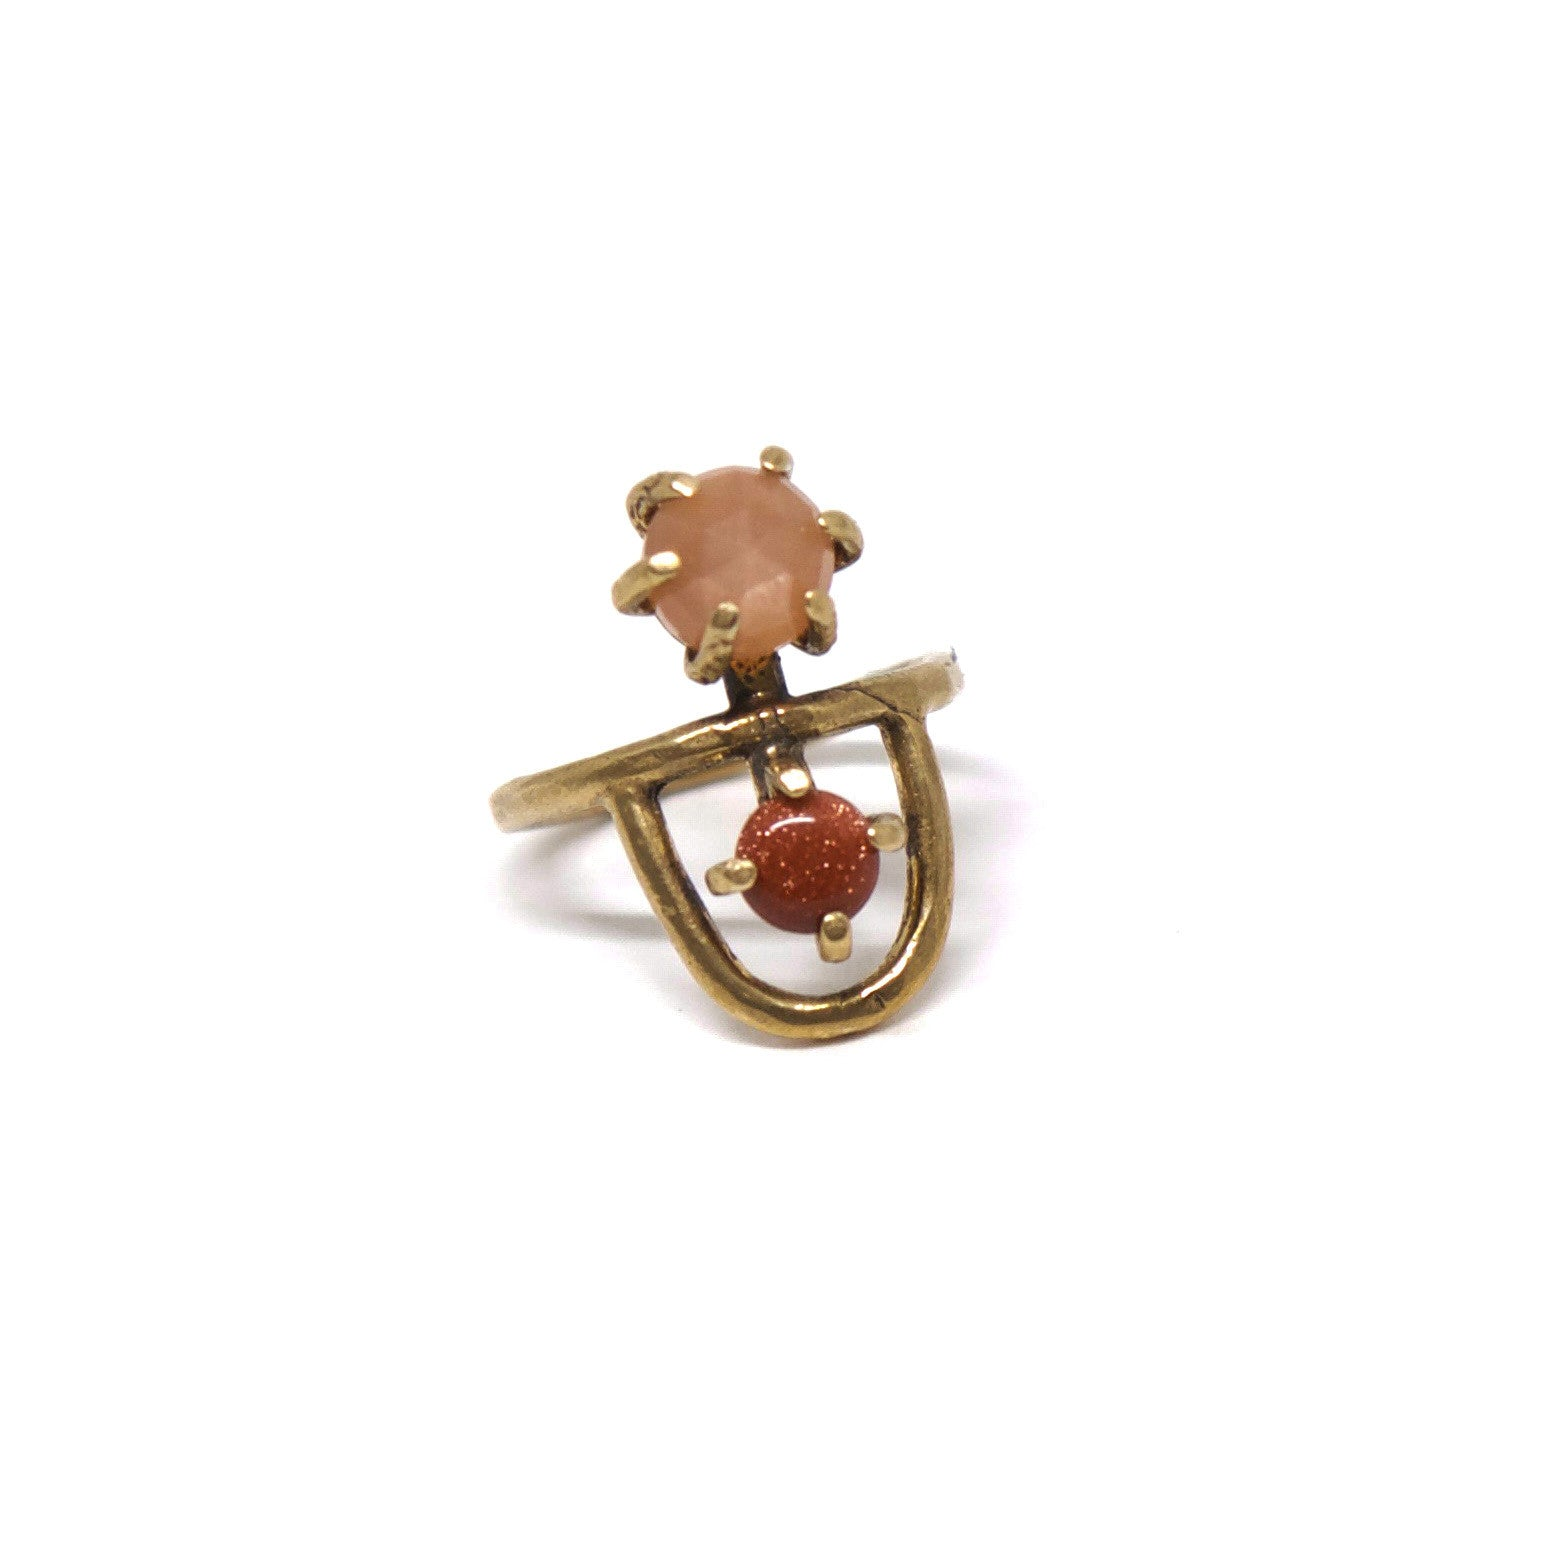 Arche Ring // Peach Moonstone & Goldstone